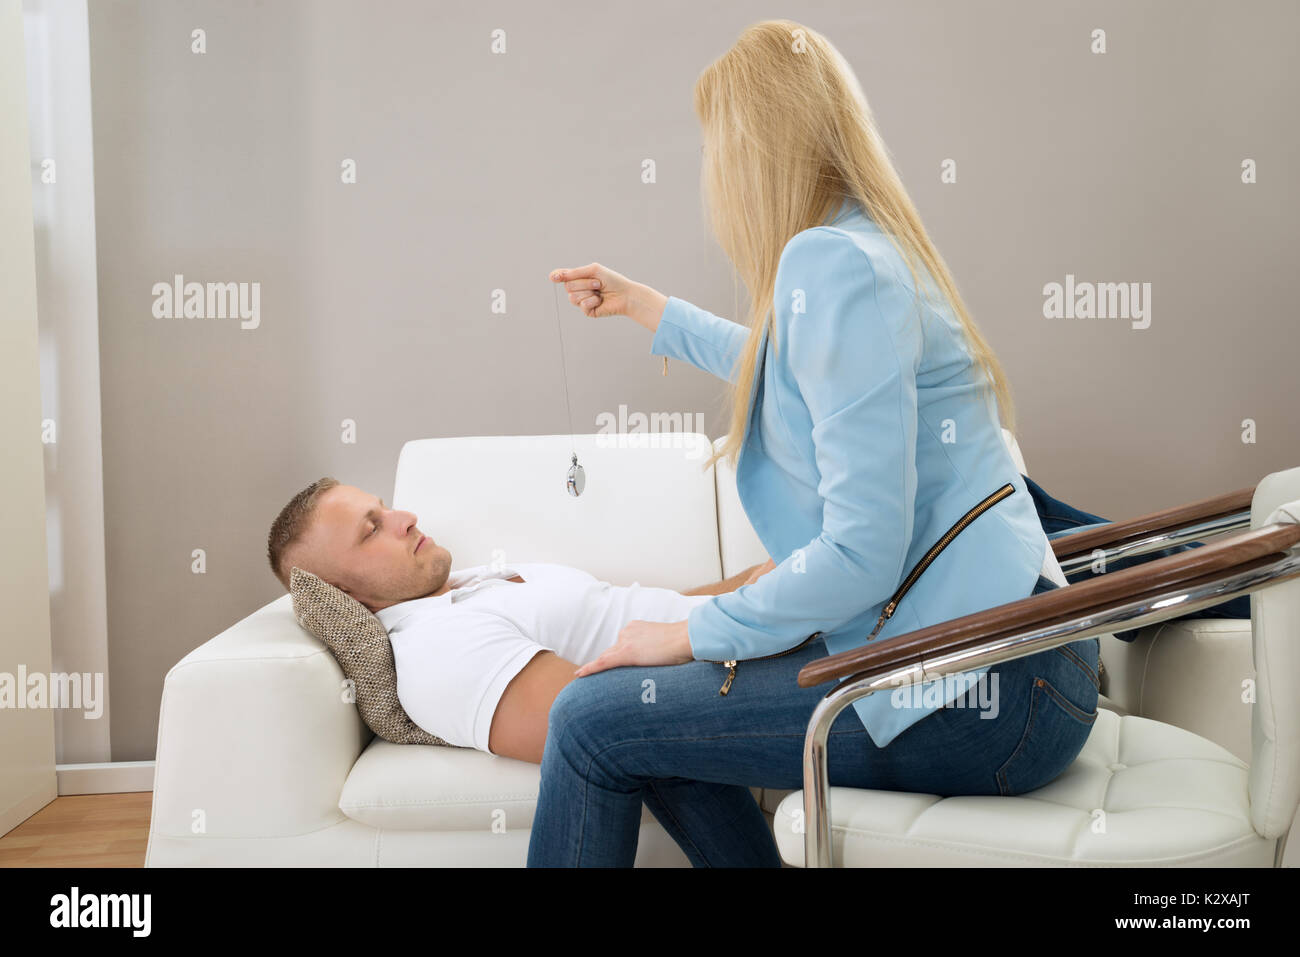 Female Psychiatrist Hypnotizing Patient Lying On Couch - Stock Image